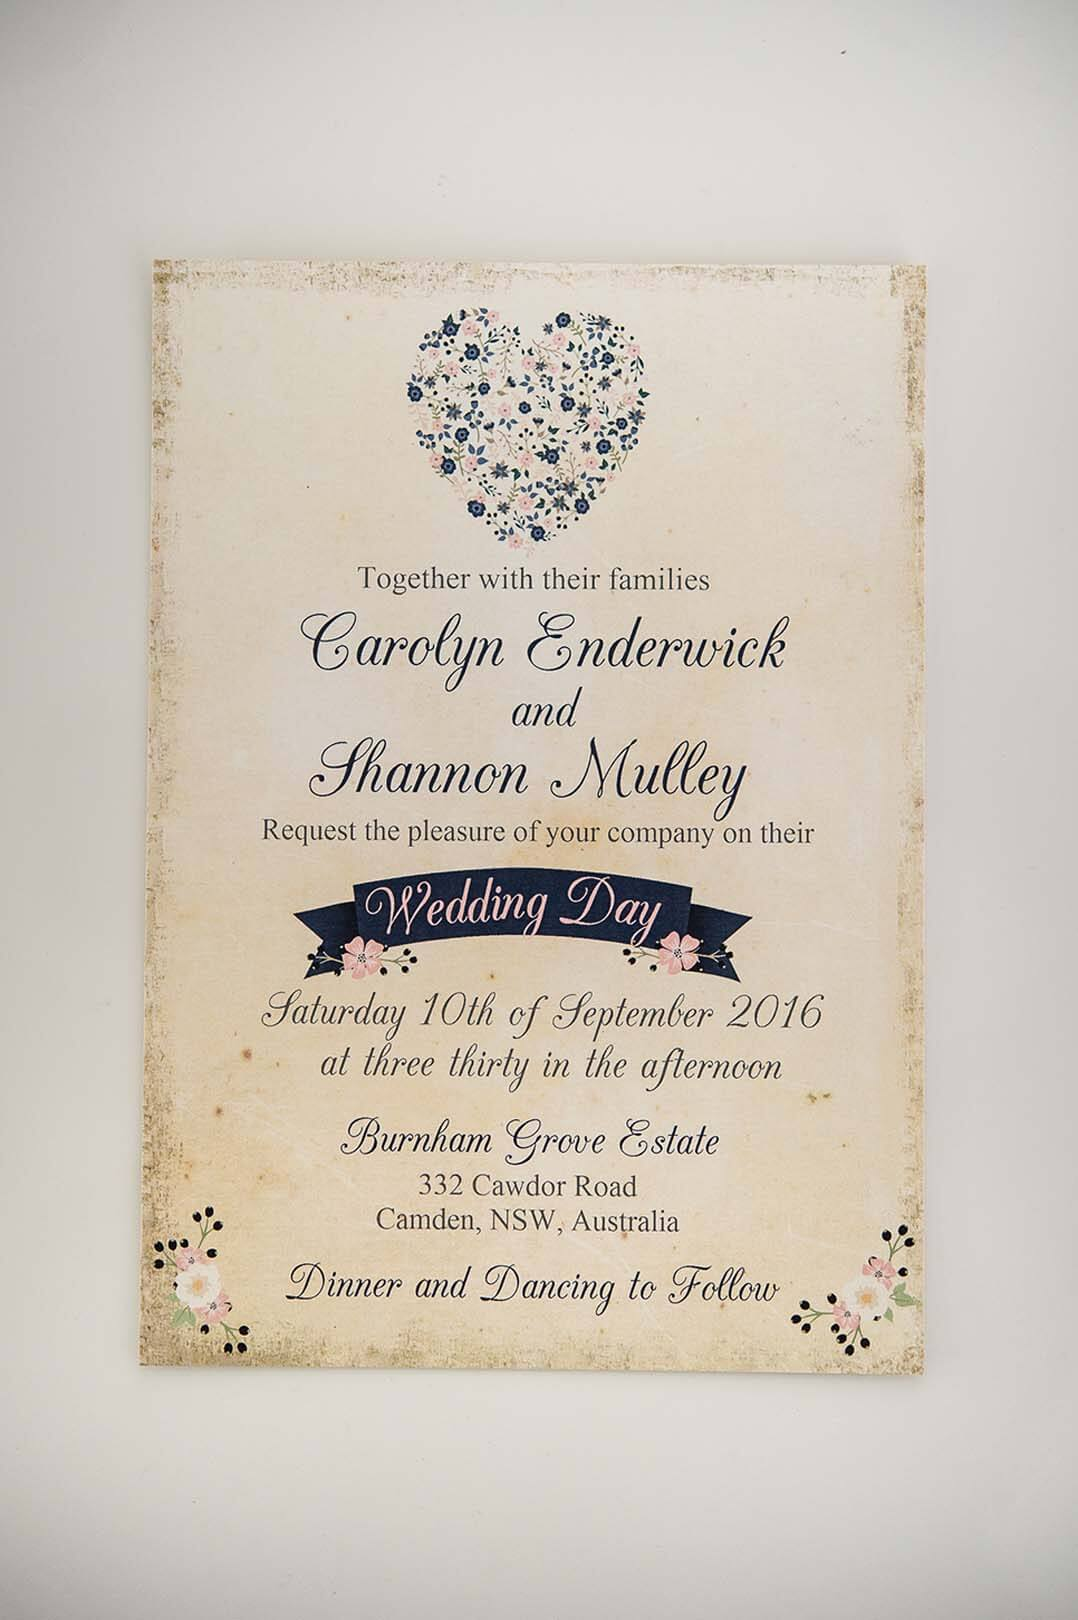 Carolyn & Shannon Wedding Card